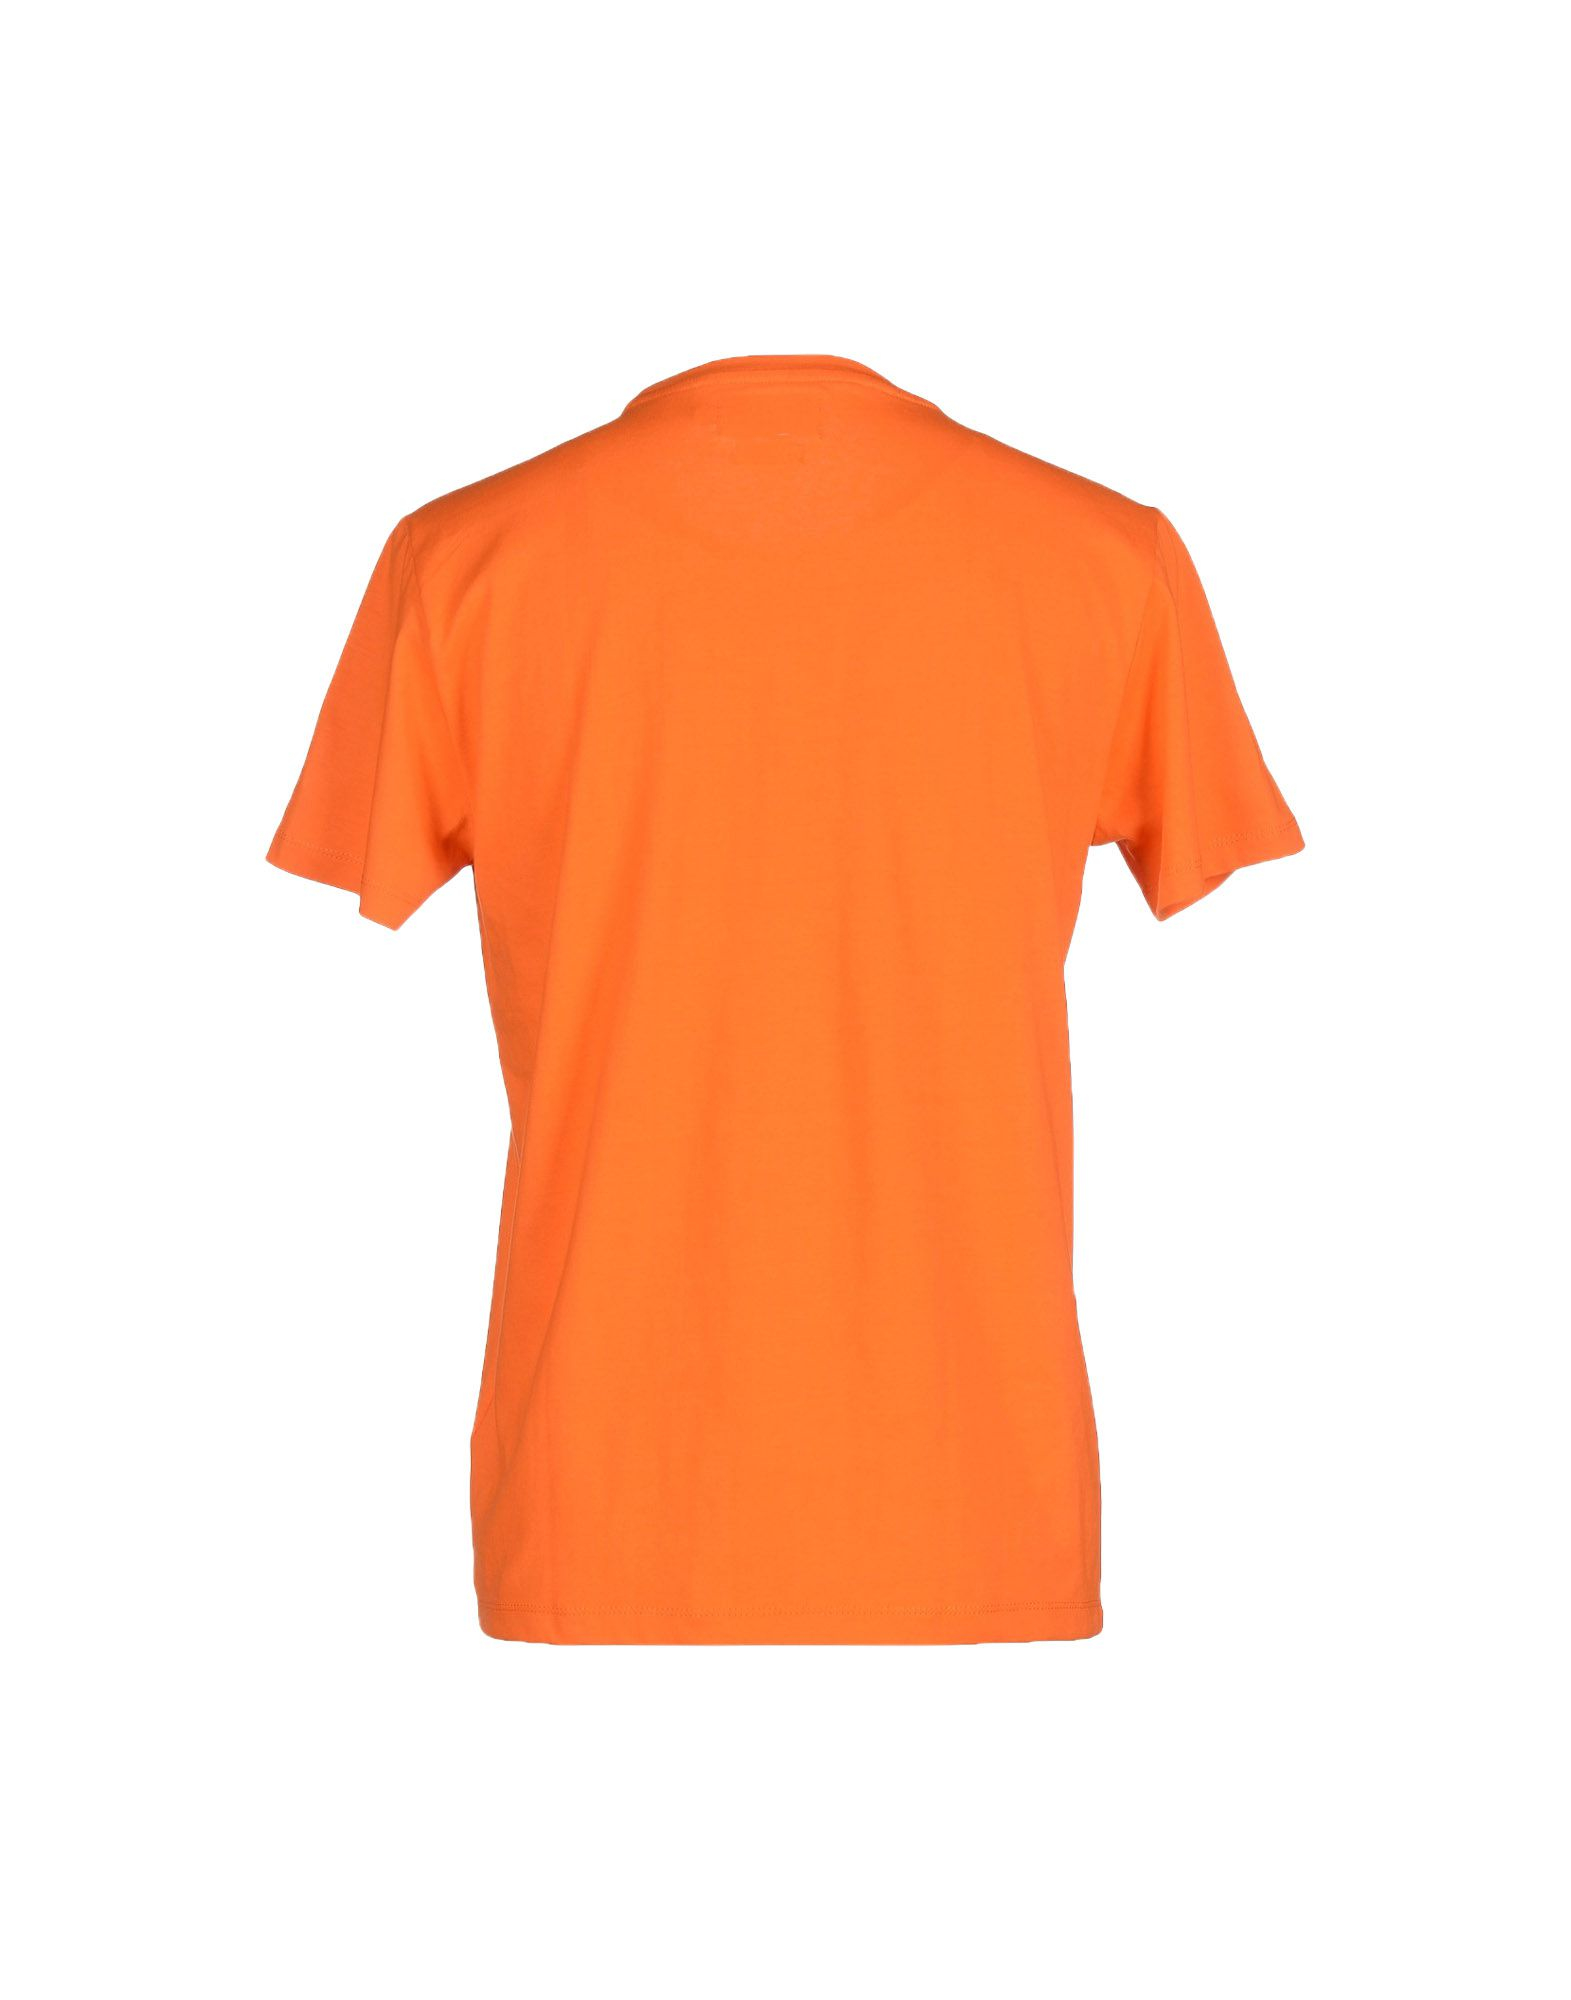 Lyst Beverly Hills Polo Club T Shirt In Orange For Men